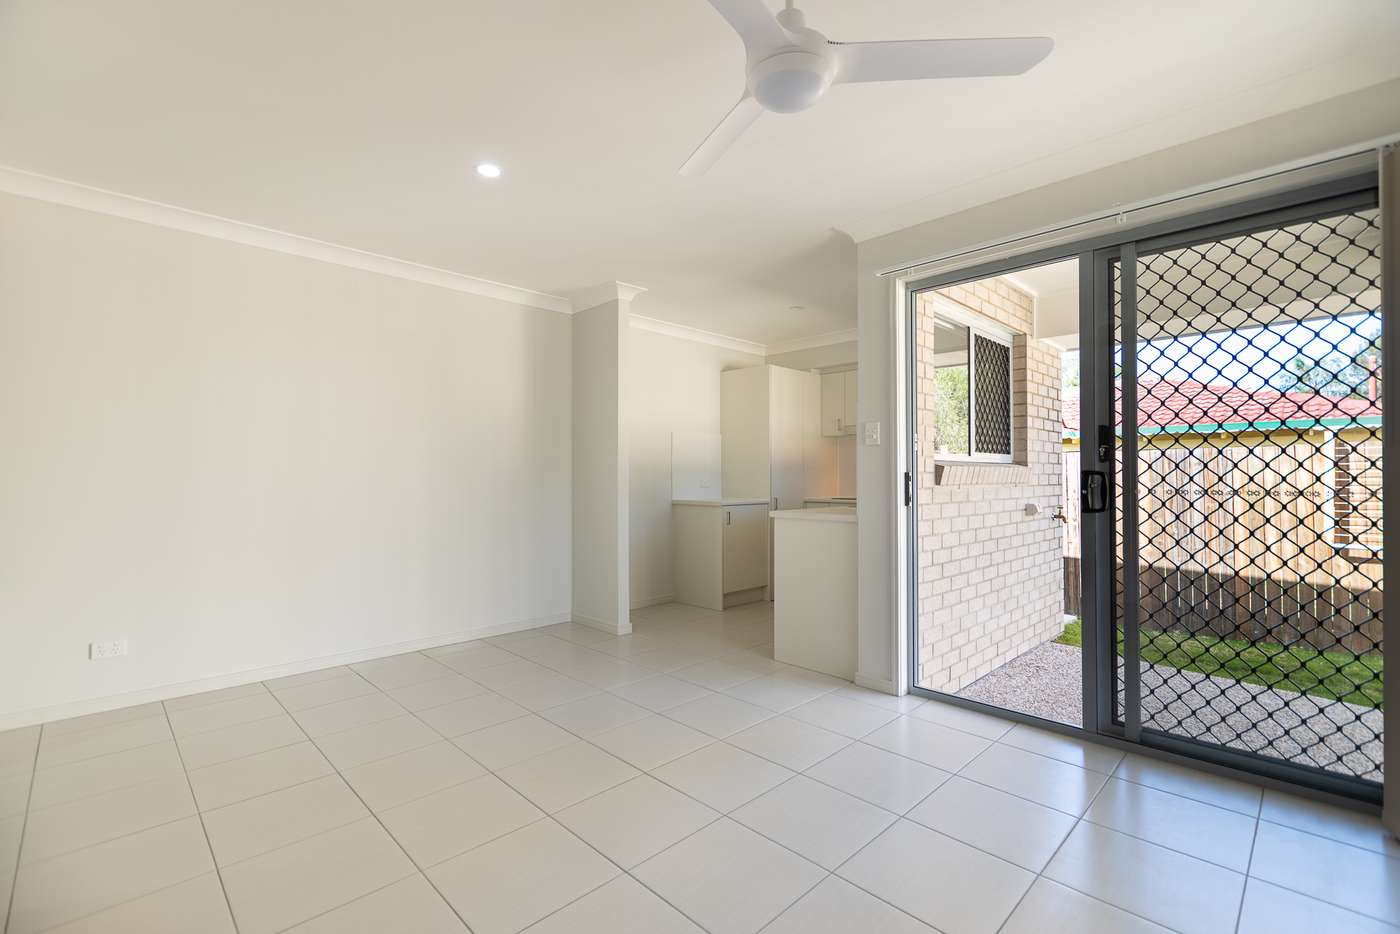 Fifth view of Homely house listing, 55 Blue-Gum Dr, Marsden QLD 4132